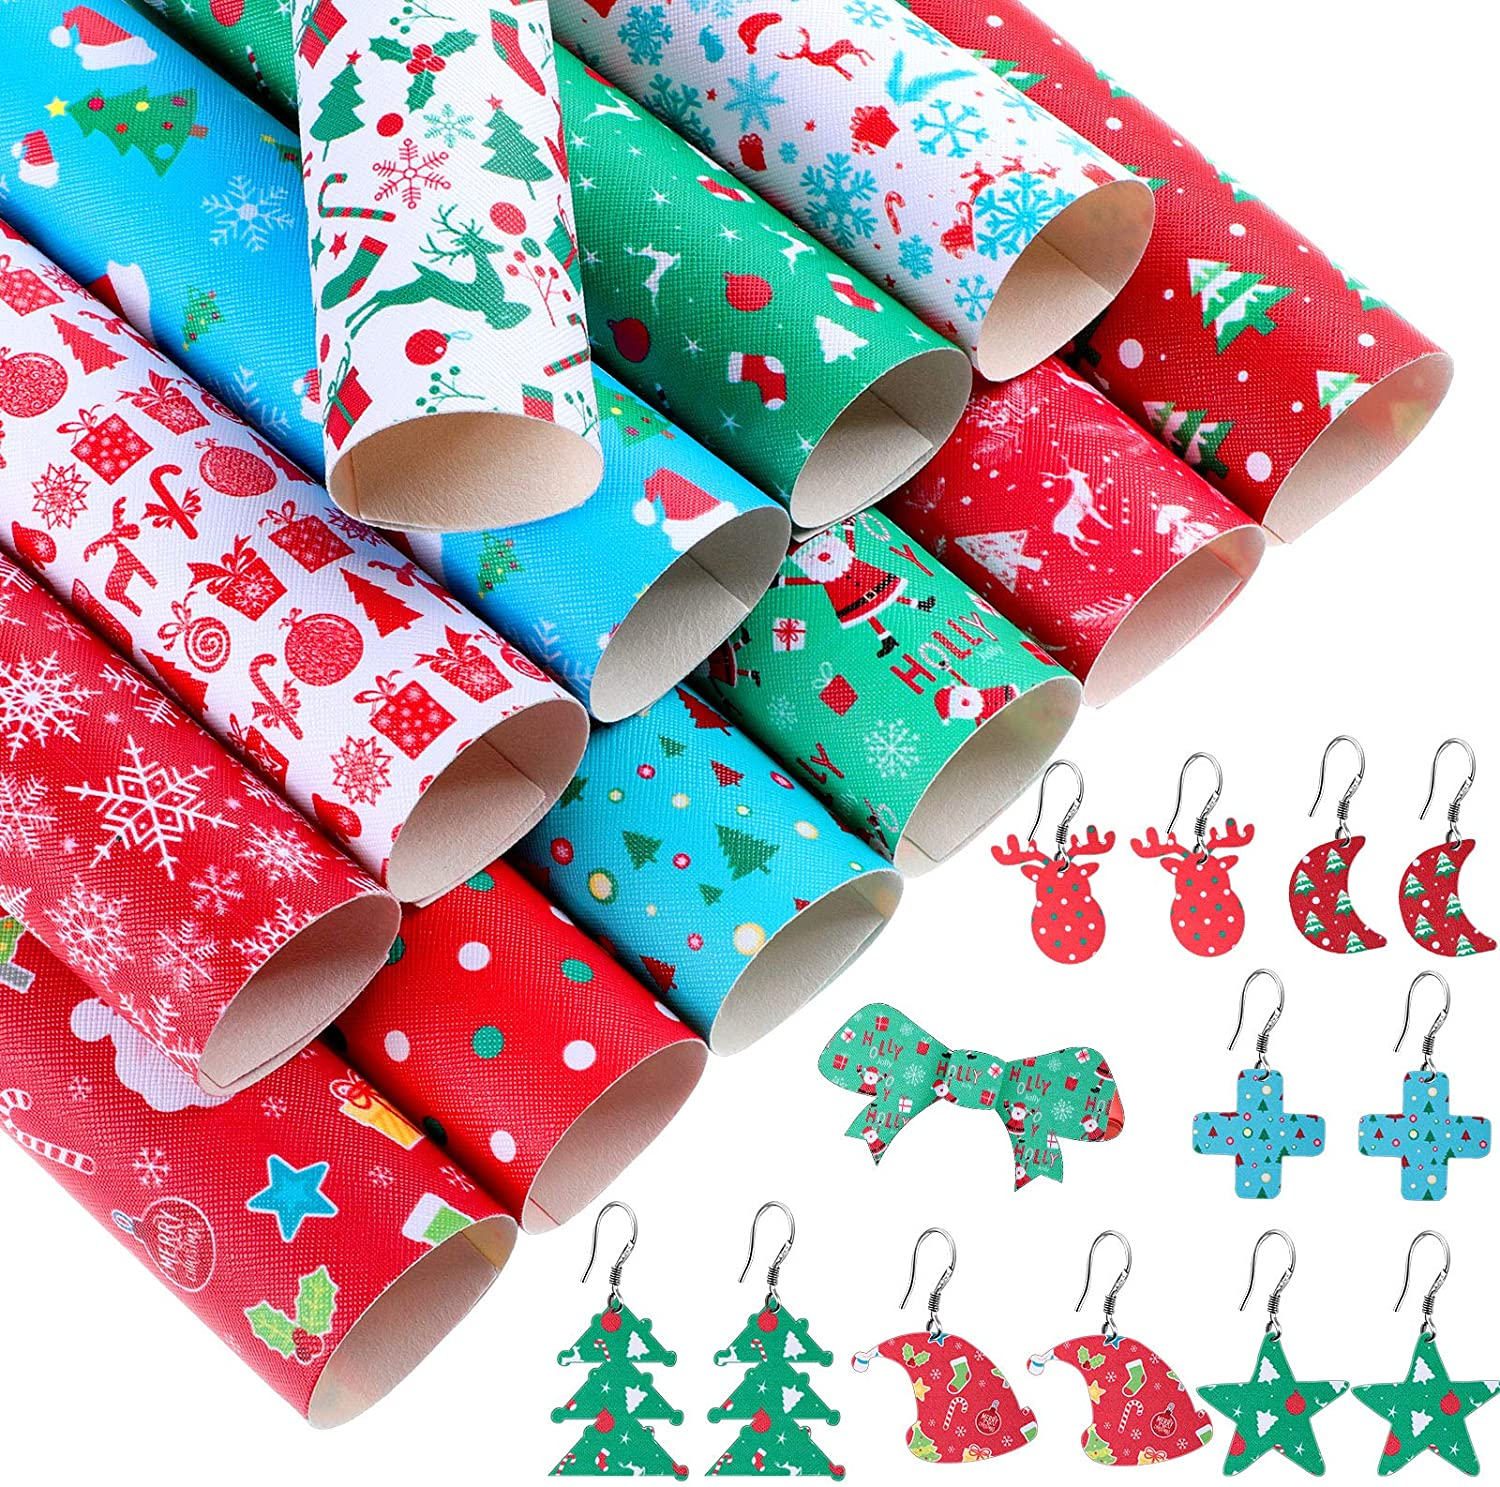 12 Pieces Christmas Theme Faux Leather Sheets for Party, Christmas Pattern Printed Leather Sheets Synthetic Leather Fabric Sheets DIY Crafts for Earrings Hair Bows DIY Crafts Making, 6.3 x 8.3 Inches